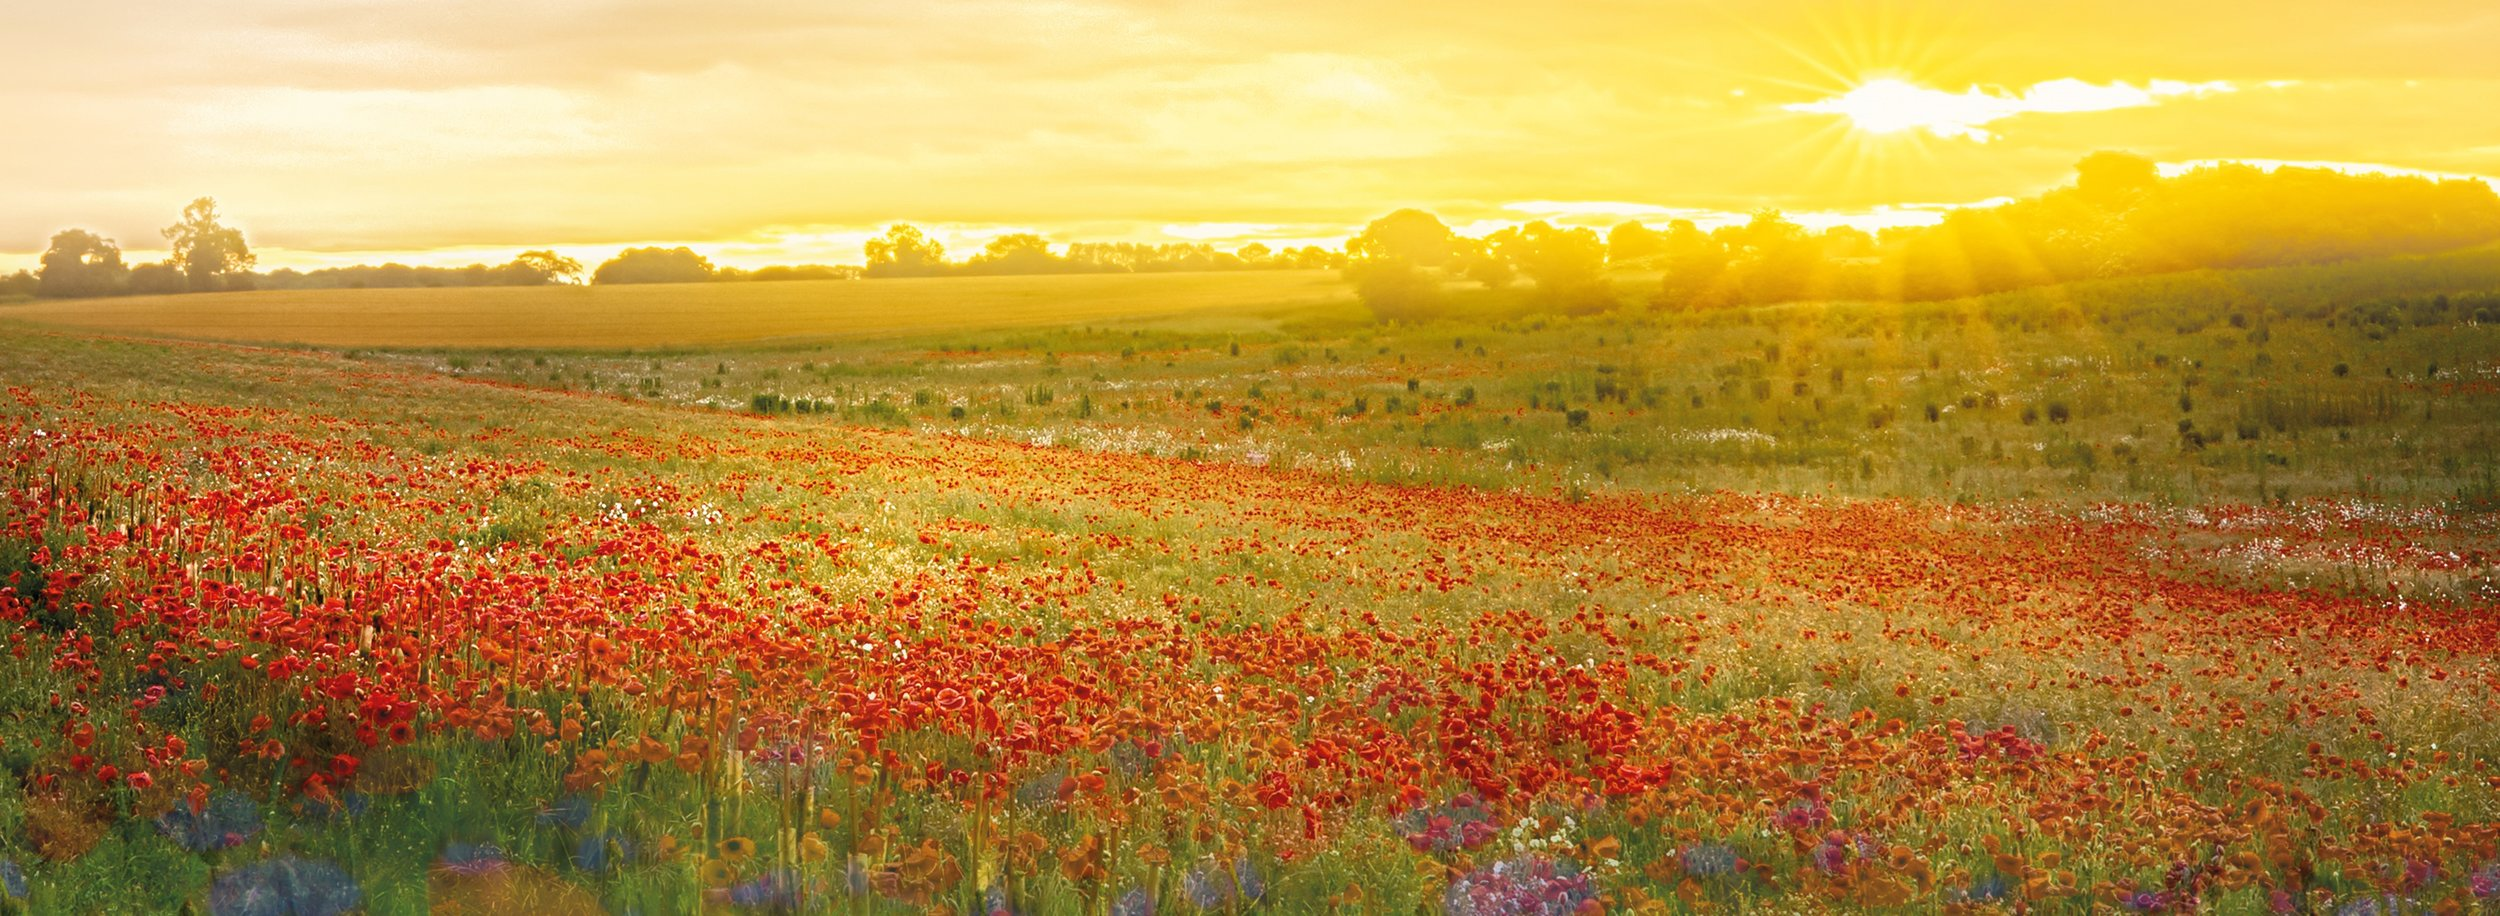 Light-and-poppies-only.jpg